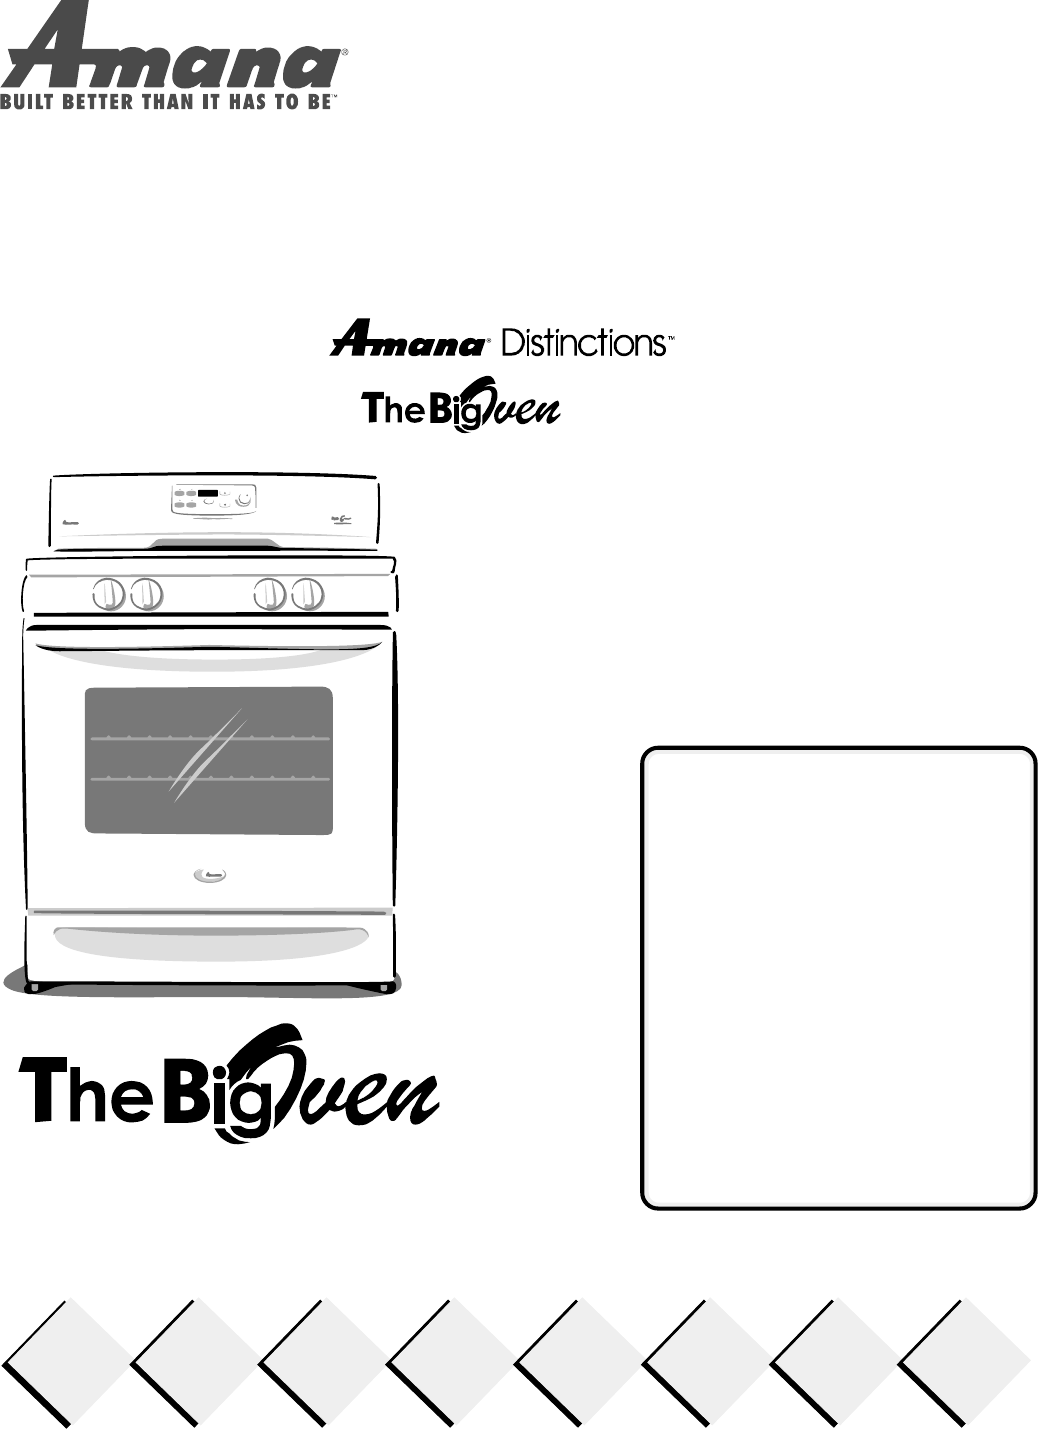 amana oven acf3325a user guide manualsonline com rh kitchen manualsonline com amana washer owners manuals online amana washer service manual